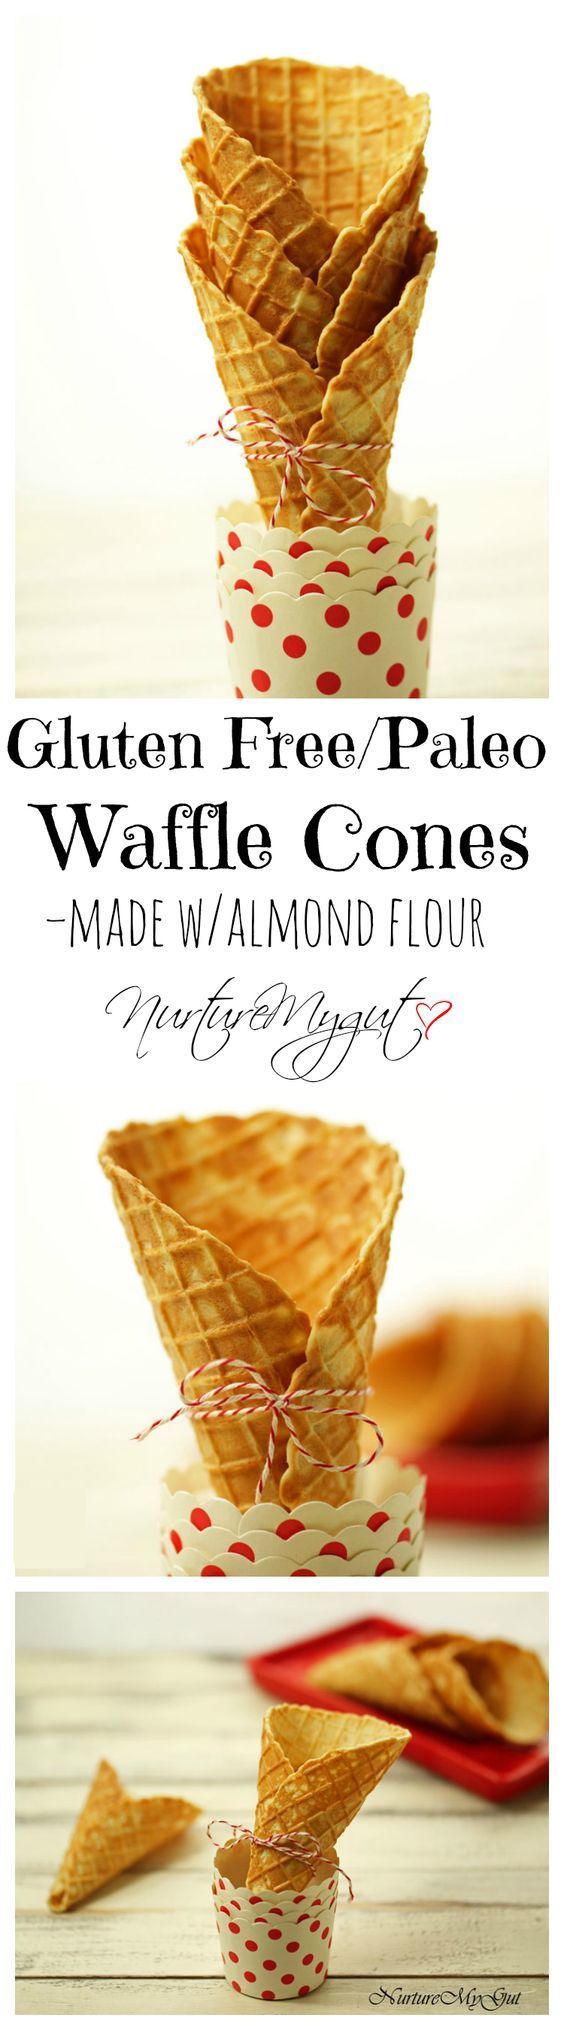 Gluten Free Paleo Waffle Cones. Dairy Free. Made with blanched almond flour and sweetened naturally with maple syrup. These are light, crispy and have the  perfect amount of sweetness. My secret ingredient gives a bold flavor to these waffle cones! Comfortably fits 2 scoops of ice cream.: